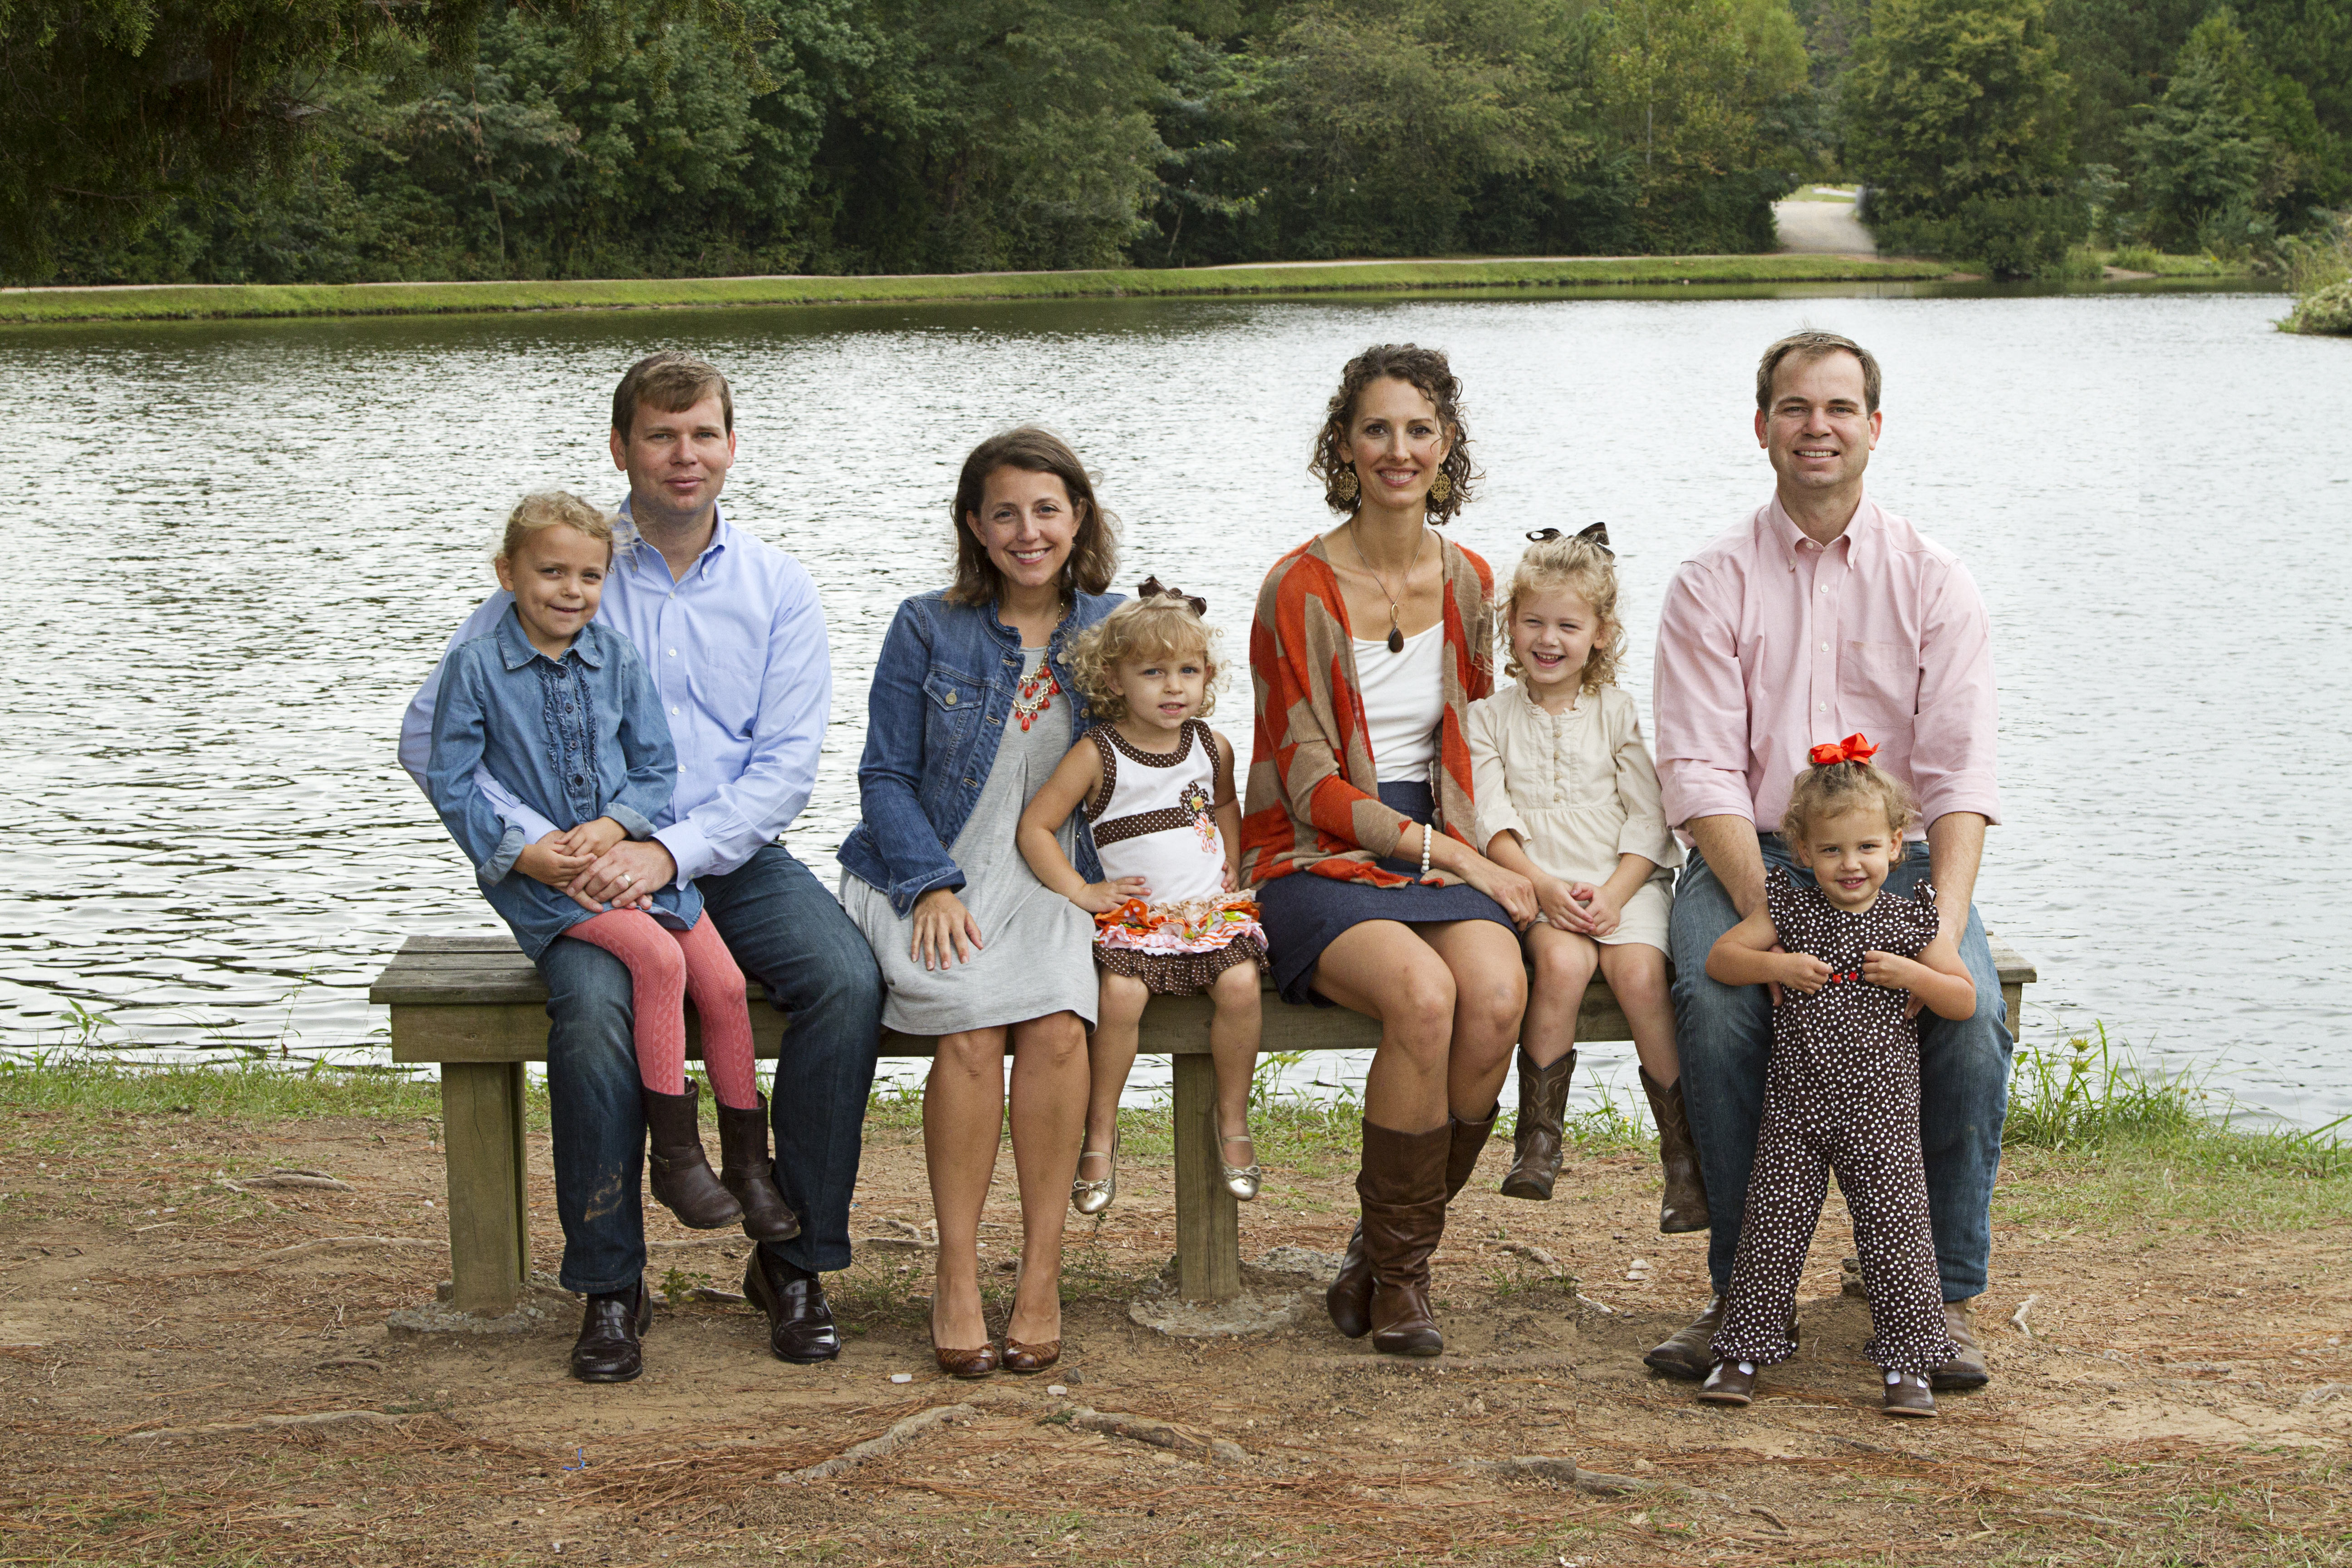 Family Photo Session – Birmingham, AL Veterans Park